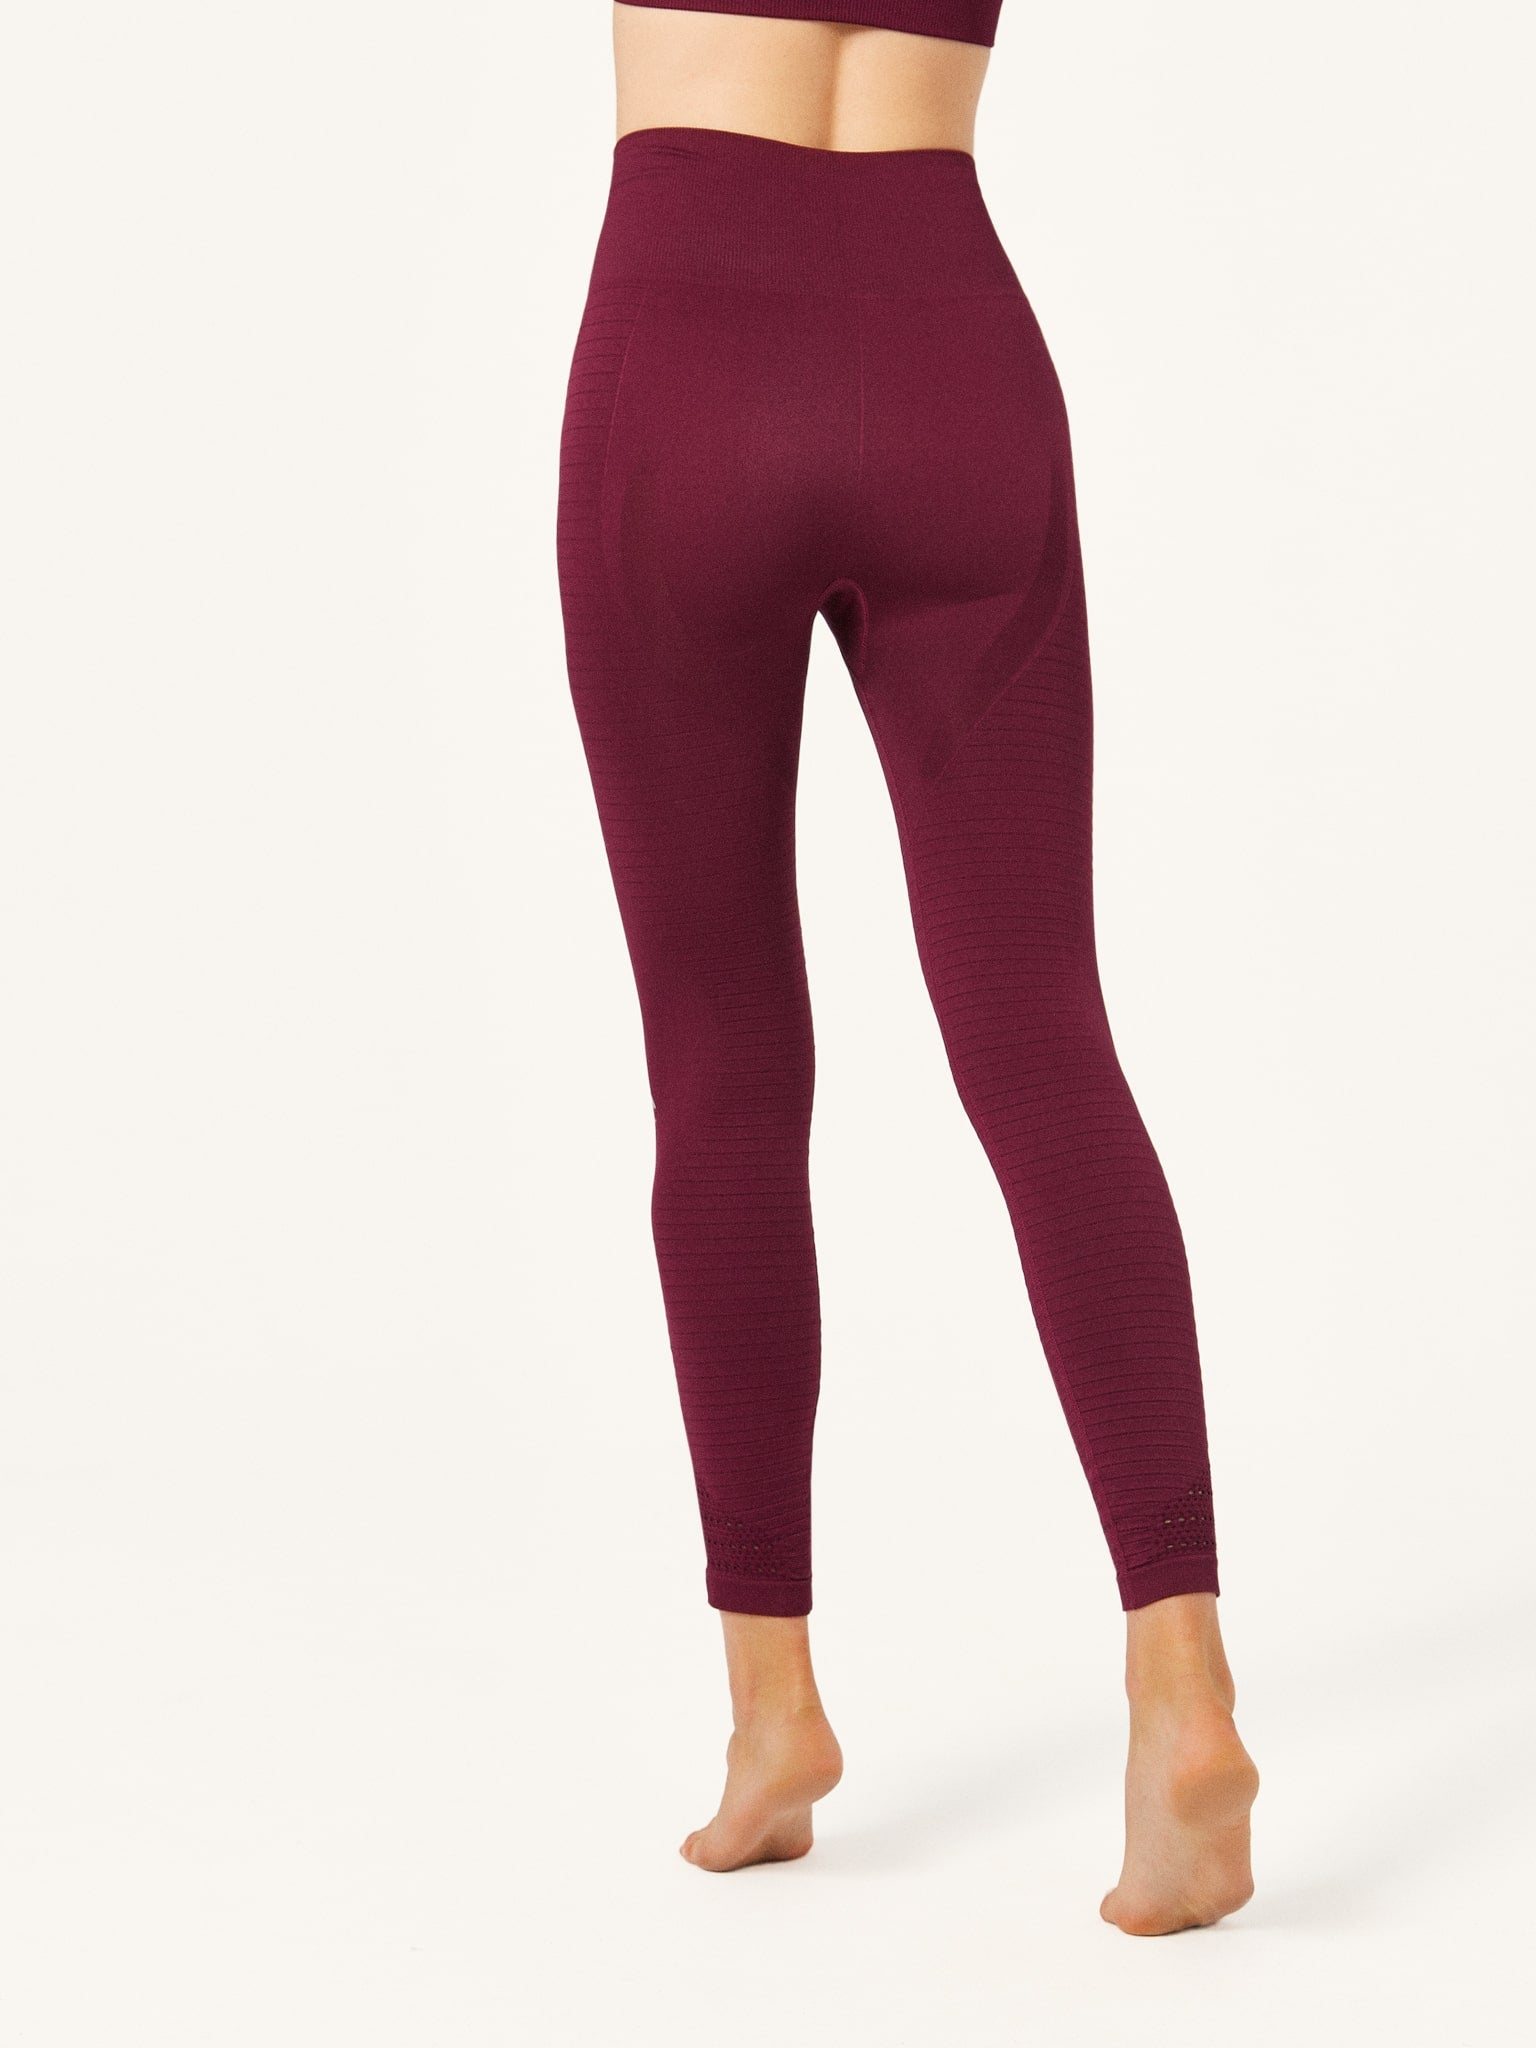 Legging Hatha Wine